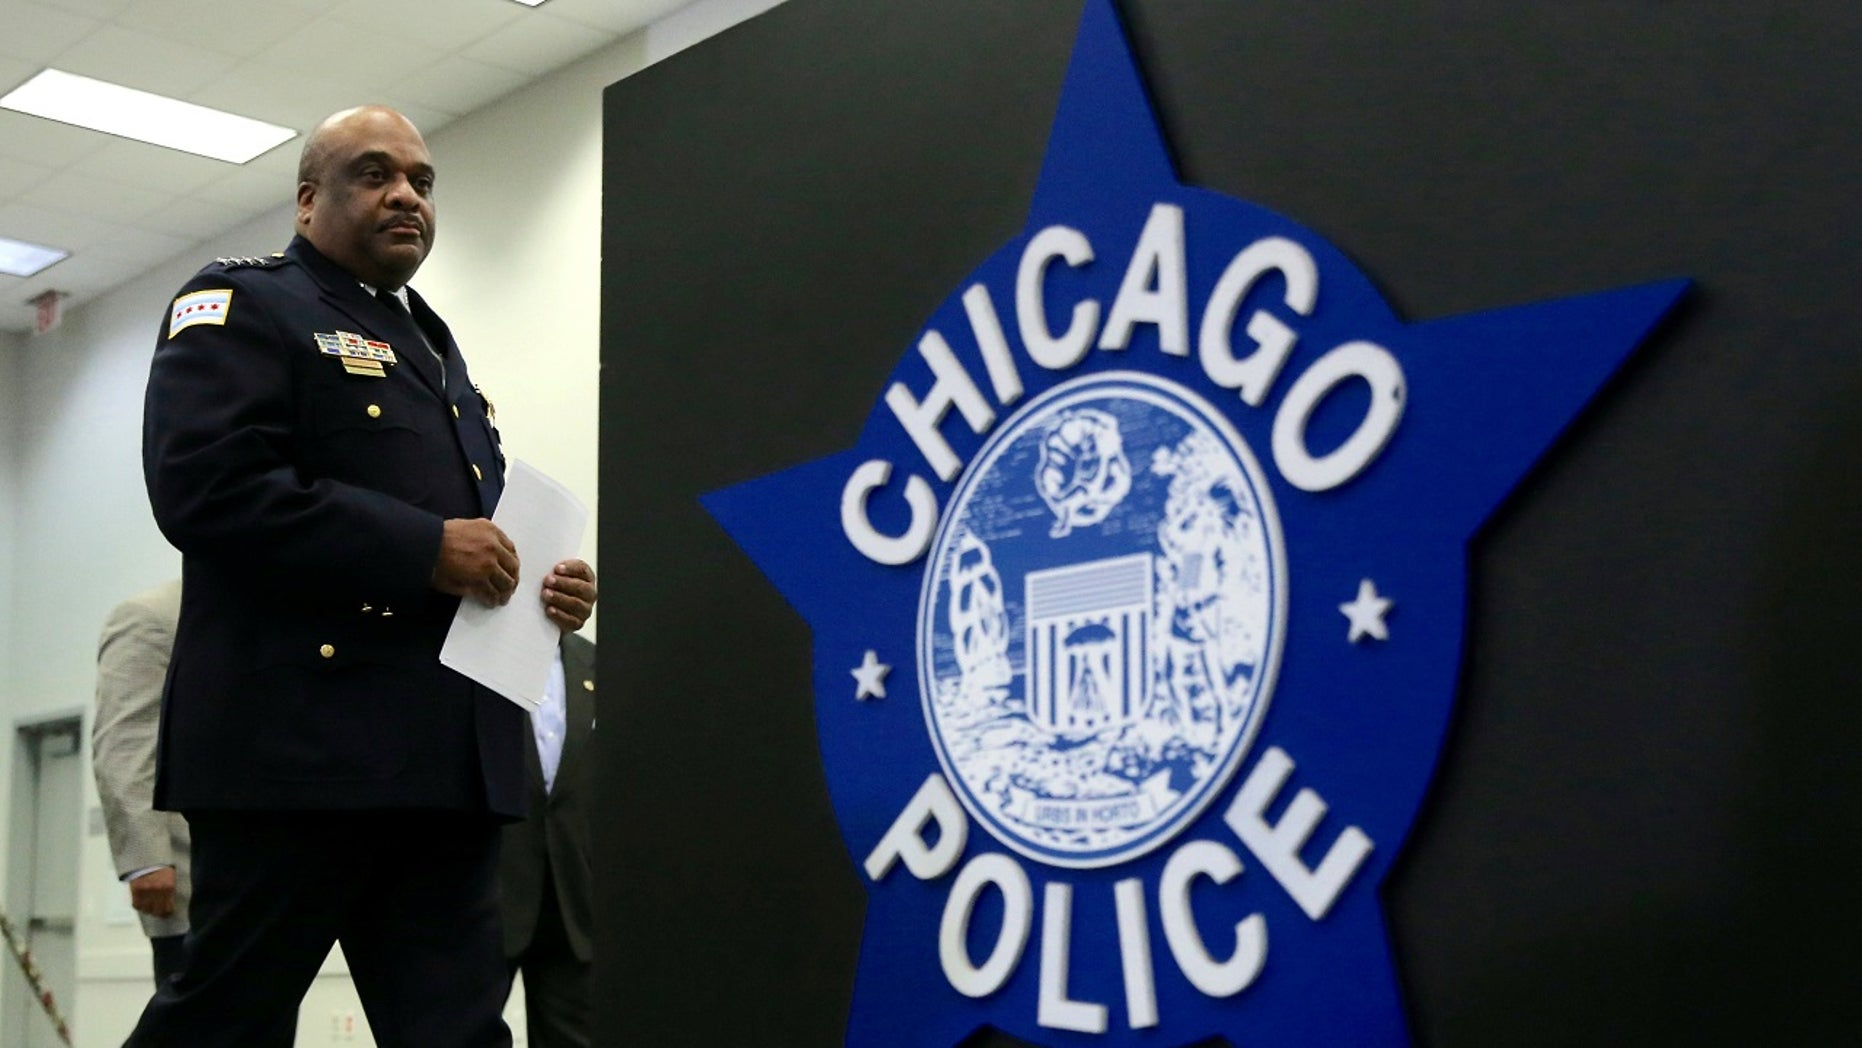 Chicago Police Superintendent Eddie Johnson arrives at a news conference announcing the department's plan to hire nearly 1,000 new police officers in Chicago, Sept. 21, 2016.